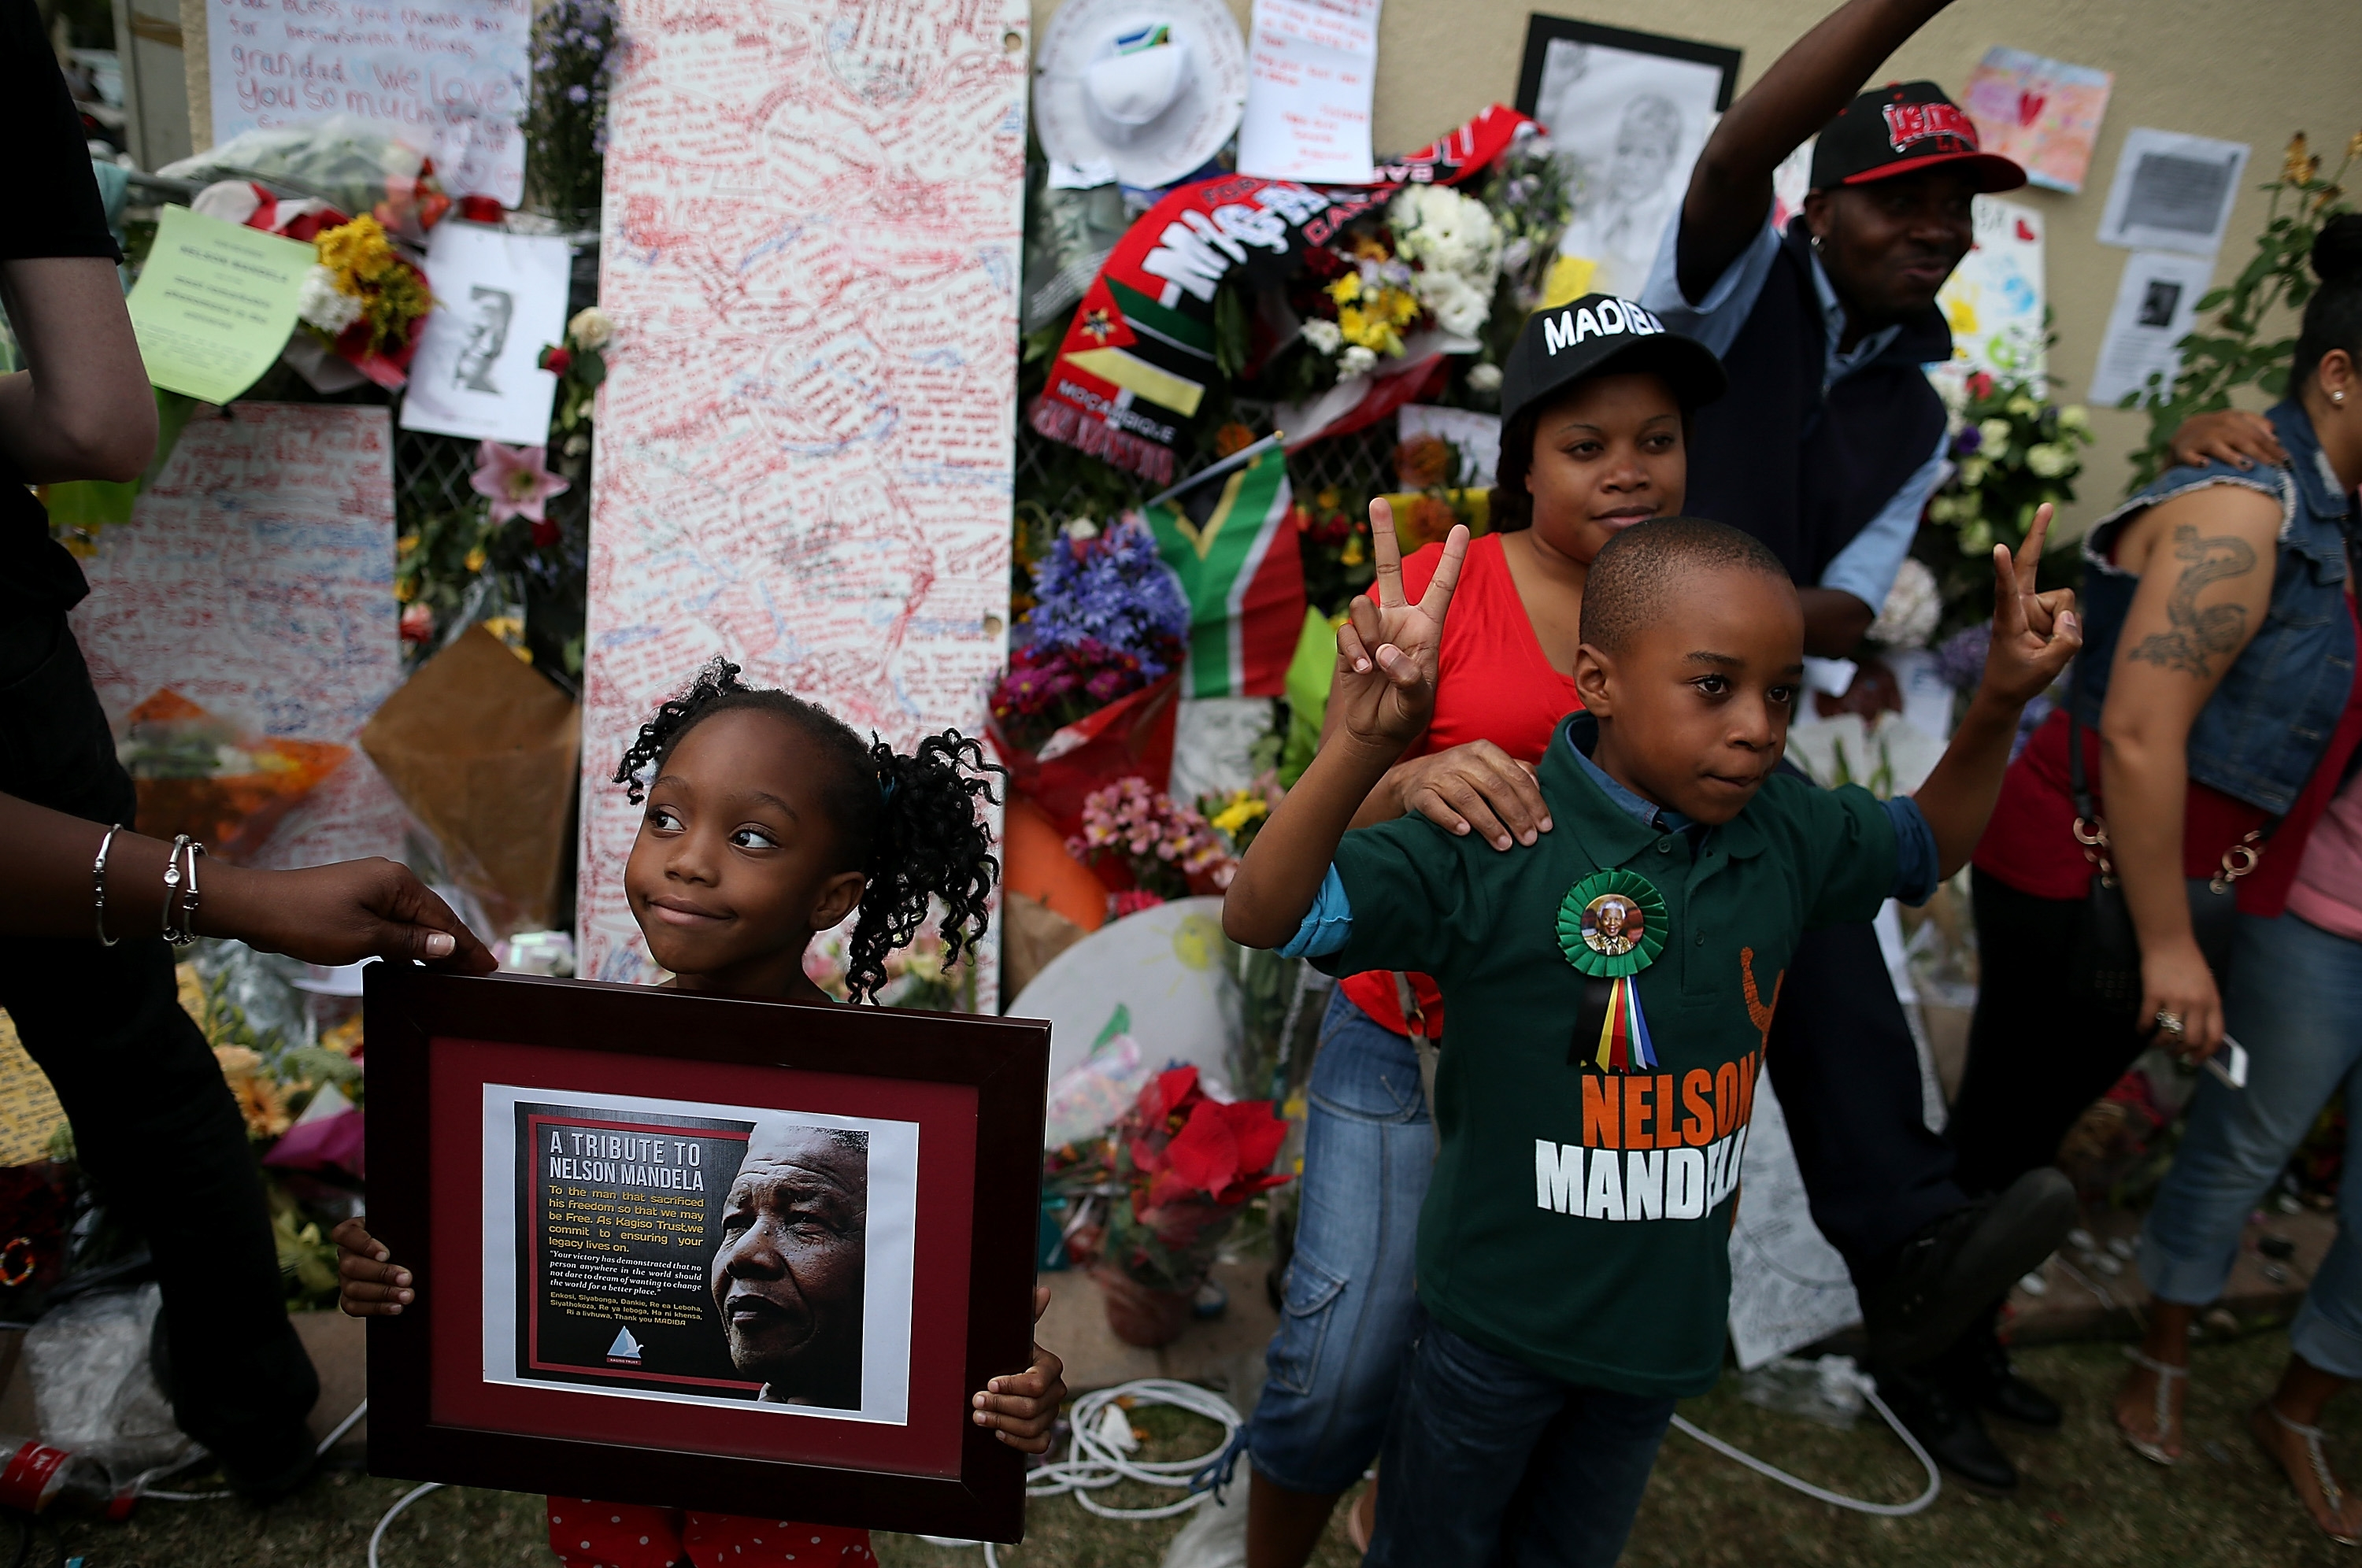 In Johannesburg, South Africa, people gather Saturday in front of a shrine of flowers, cards and candles to celebrate the life of Nelson Mandela outside his home. Mandela died Thursday at age 95.